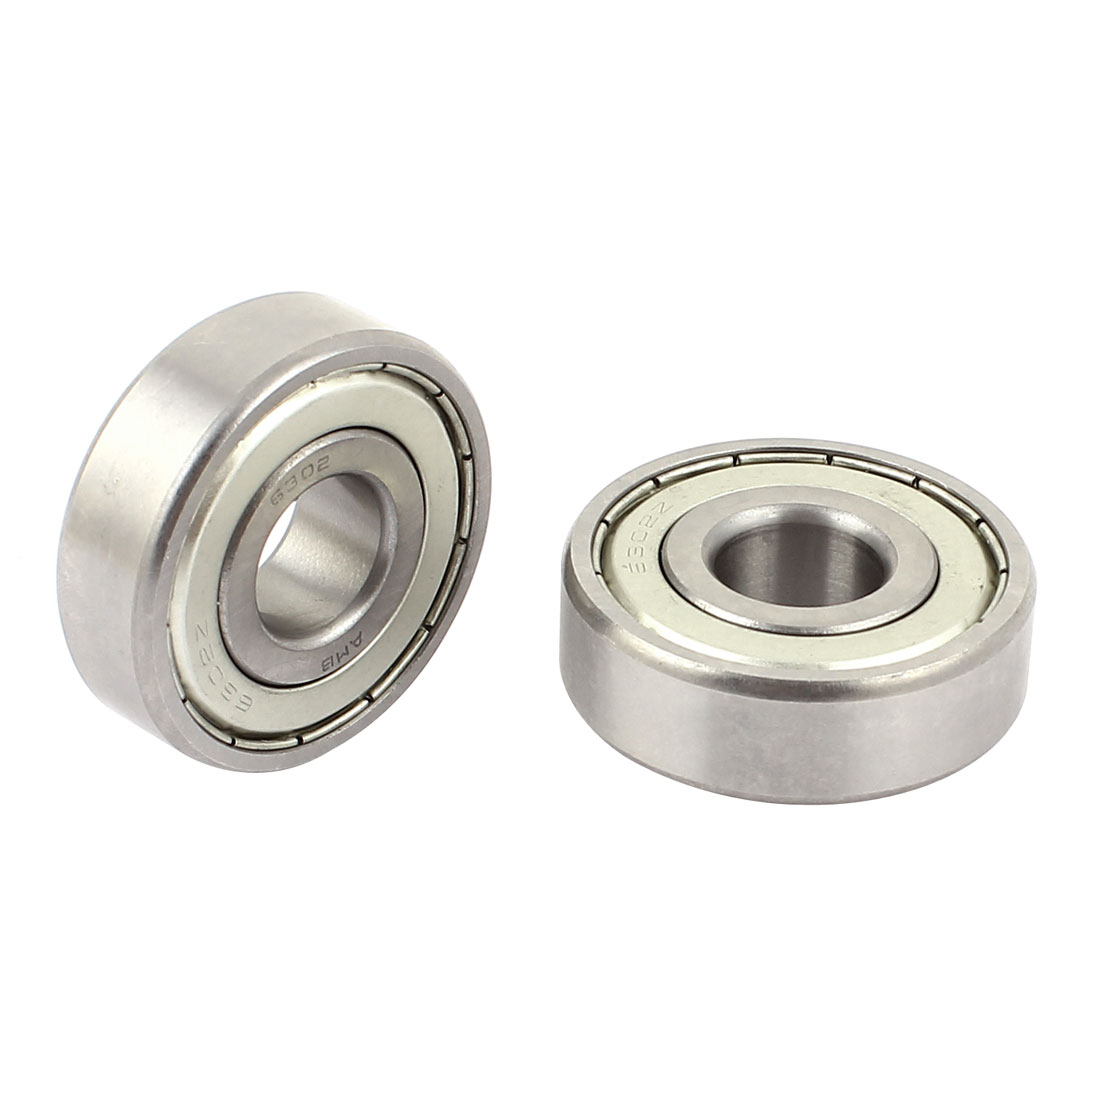 2 Pcs 6302Z Deep Groove Ball Bearing Silver Tone 42mm x 15mm x 13mm